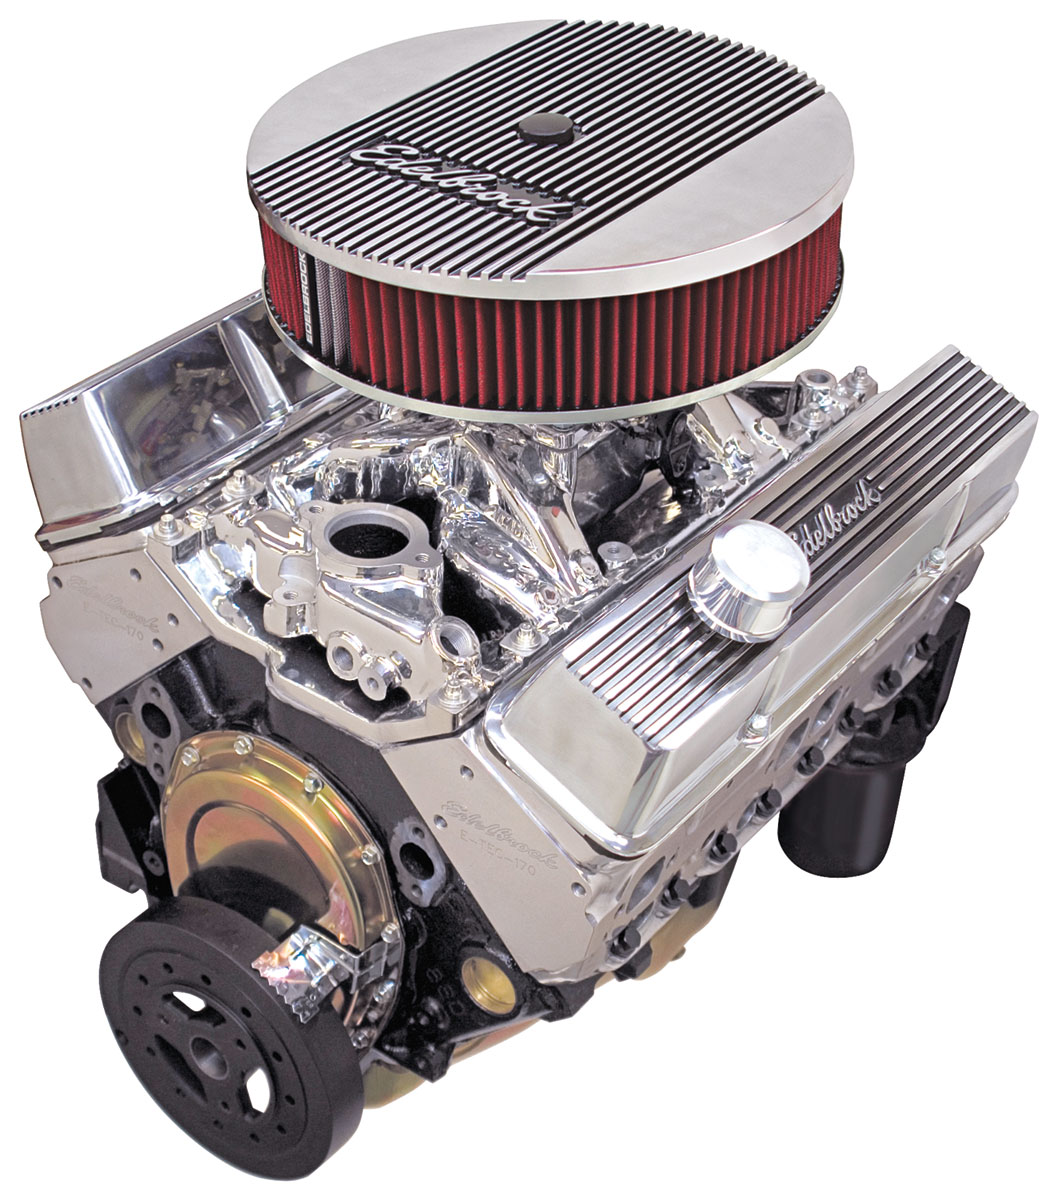 Crate Engine, RPM E-TEC, Edelbrock, Chevy 350, Short Water Pump, Polished